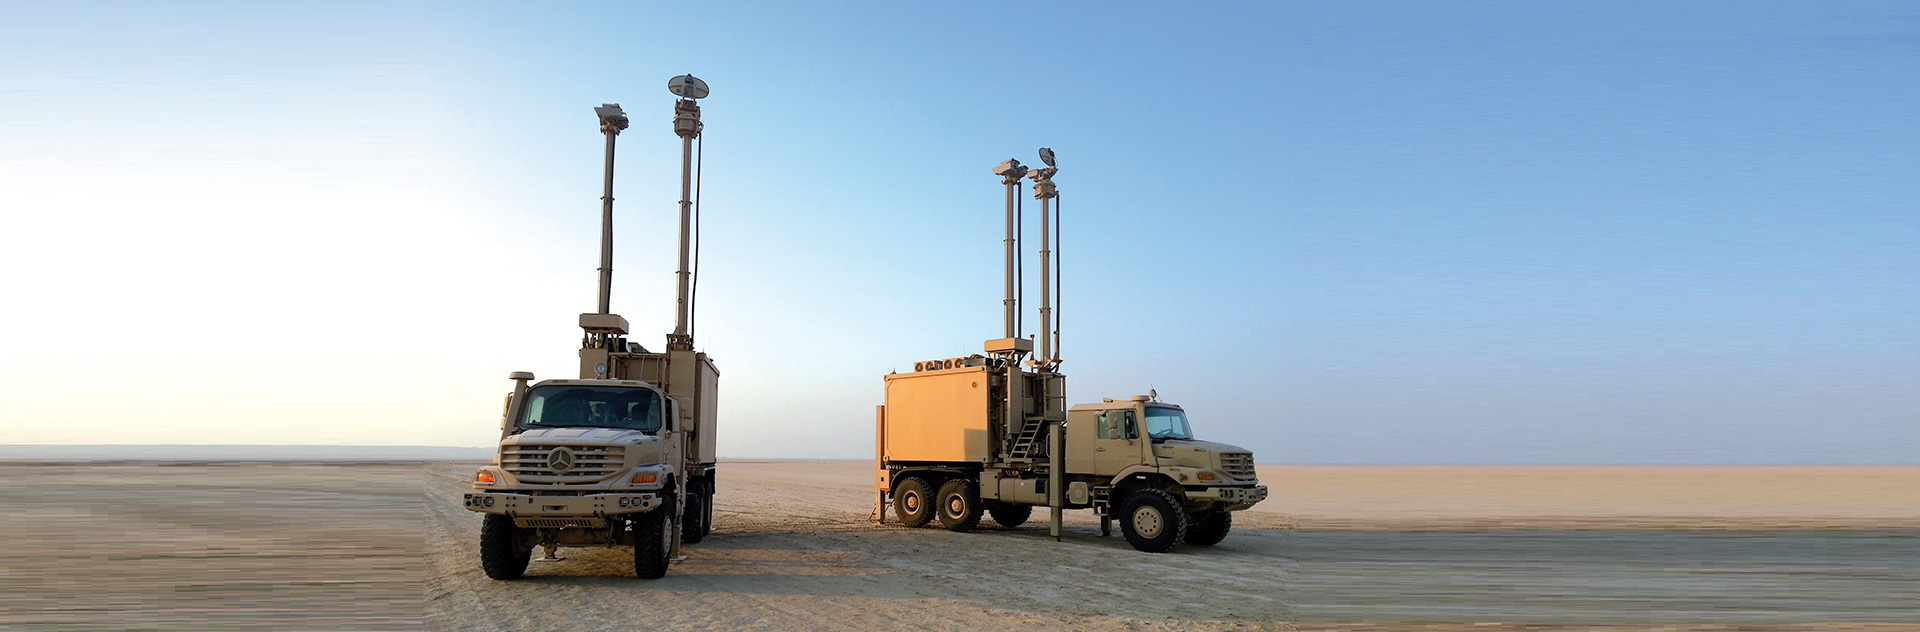 Multi-Sensors Surveillance Vehicles, easy to deploy and equipped with sensors to rapidly detect threats and secure specific fields of operation